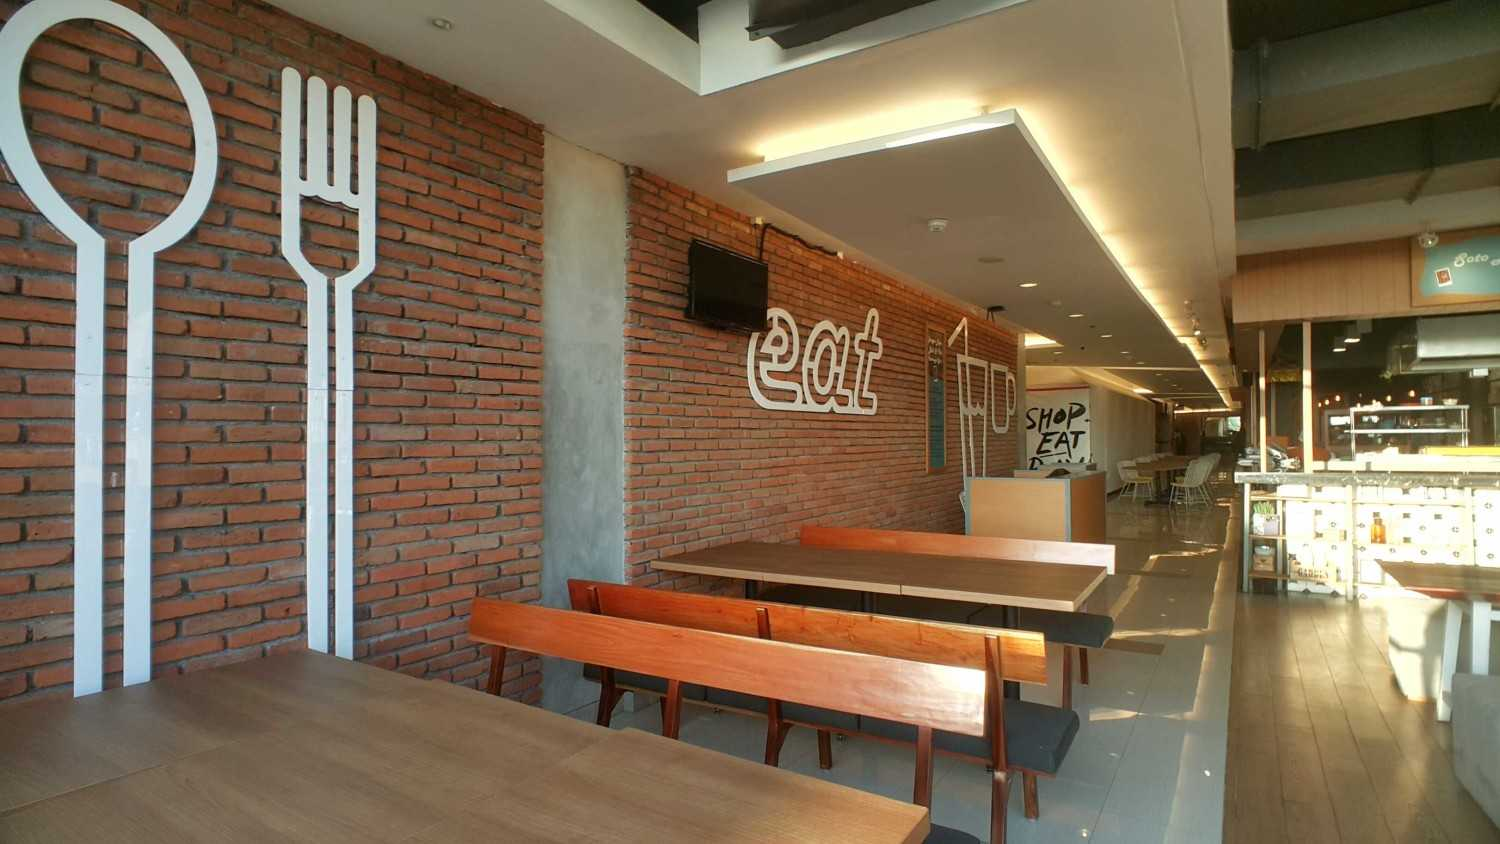 Parametr Indonesia The Park Mall Waterpark Bali Tuban, Bali Tuban, Bali Indoor Eating Area  19036